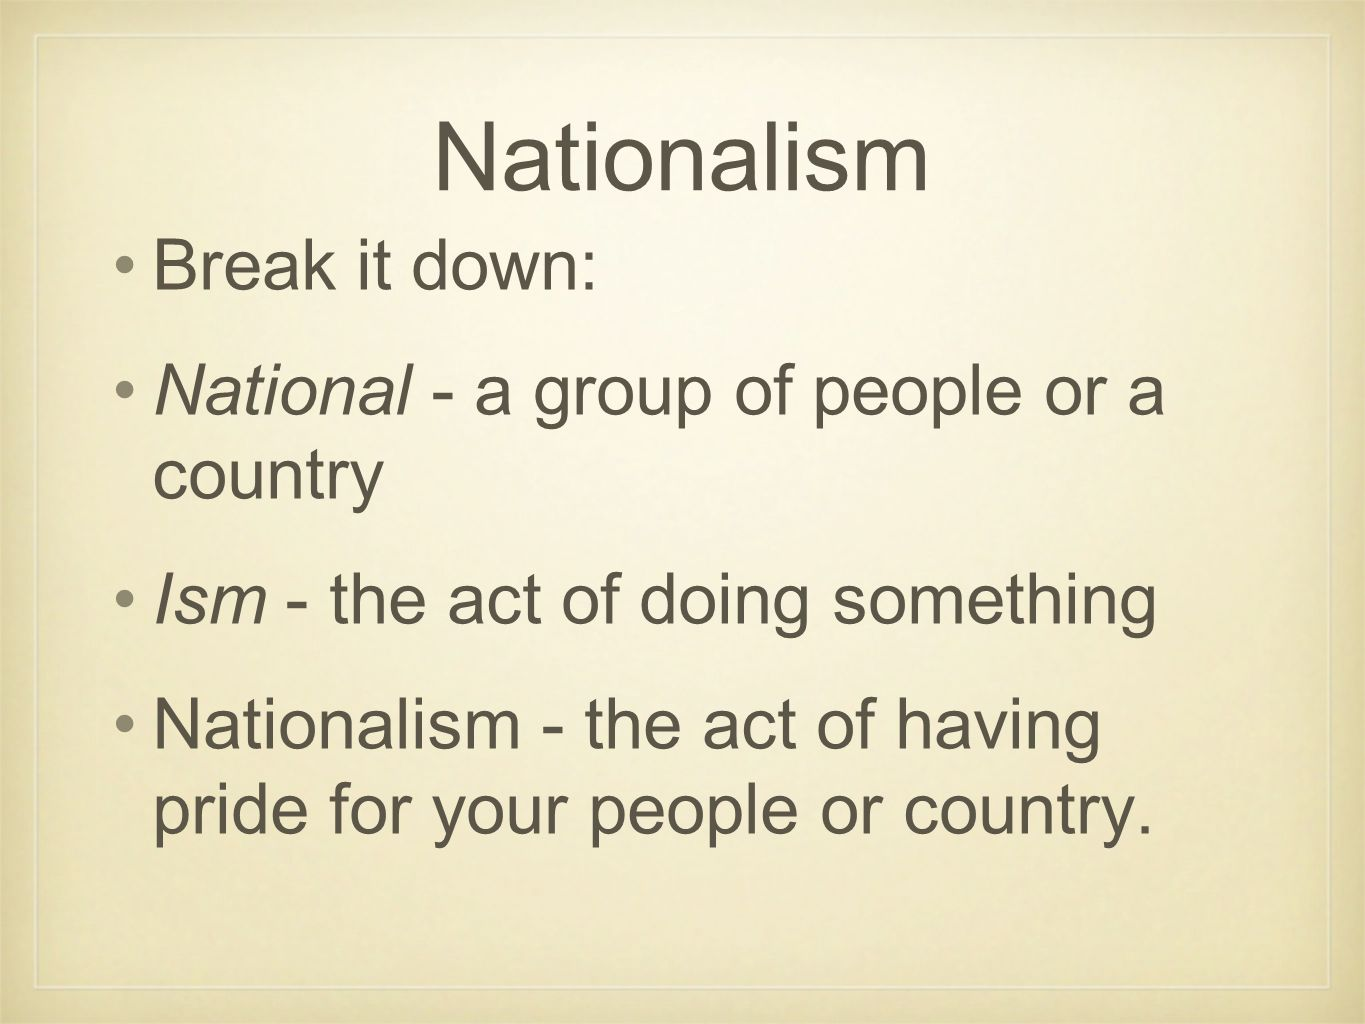 Nationalism Break it down: National - a group of people or a country Ism - the act of doing something Nationalism - the act of having pride for your p